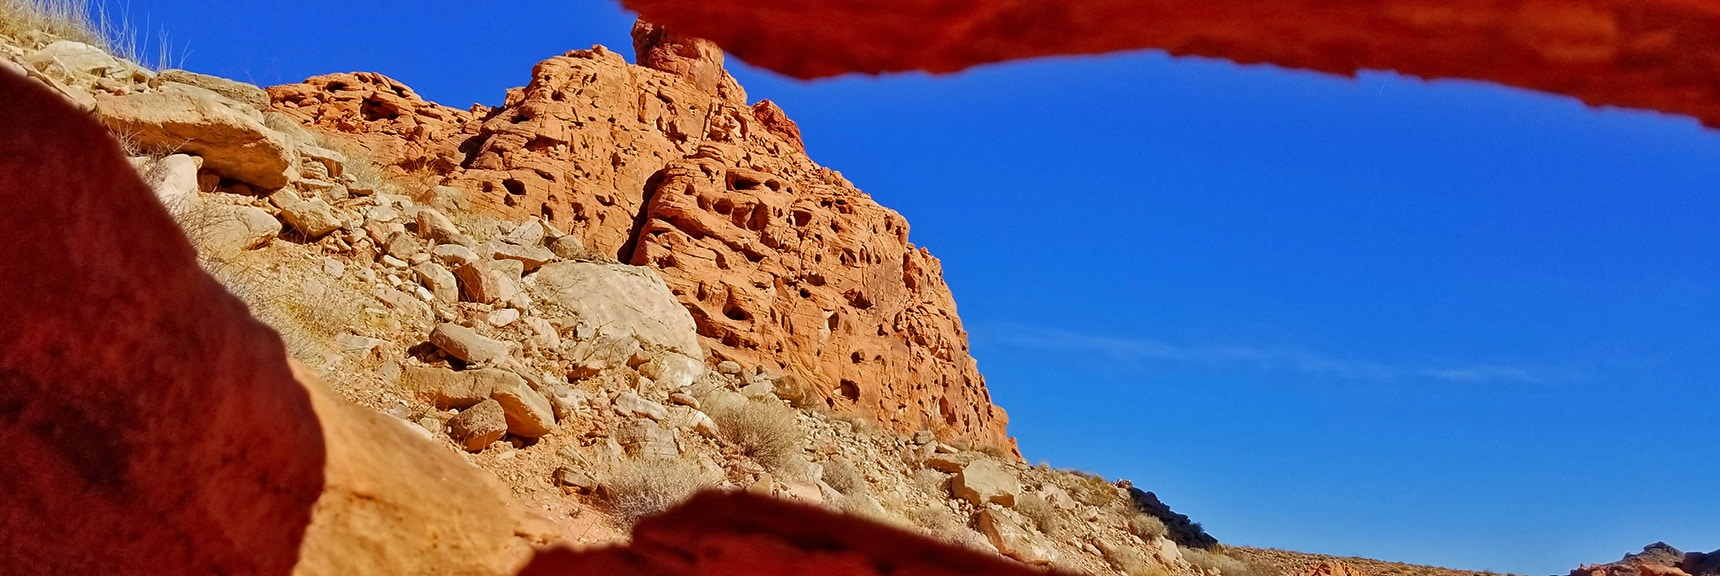 Intricate Openings in Jurassic Era Aztec Red Rock | Bowl of Fire, Lake Mead National Recreation Area, Nevada